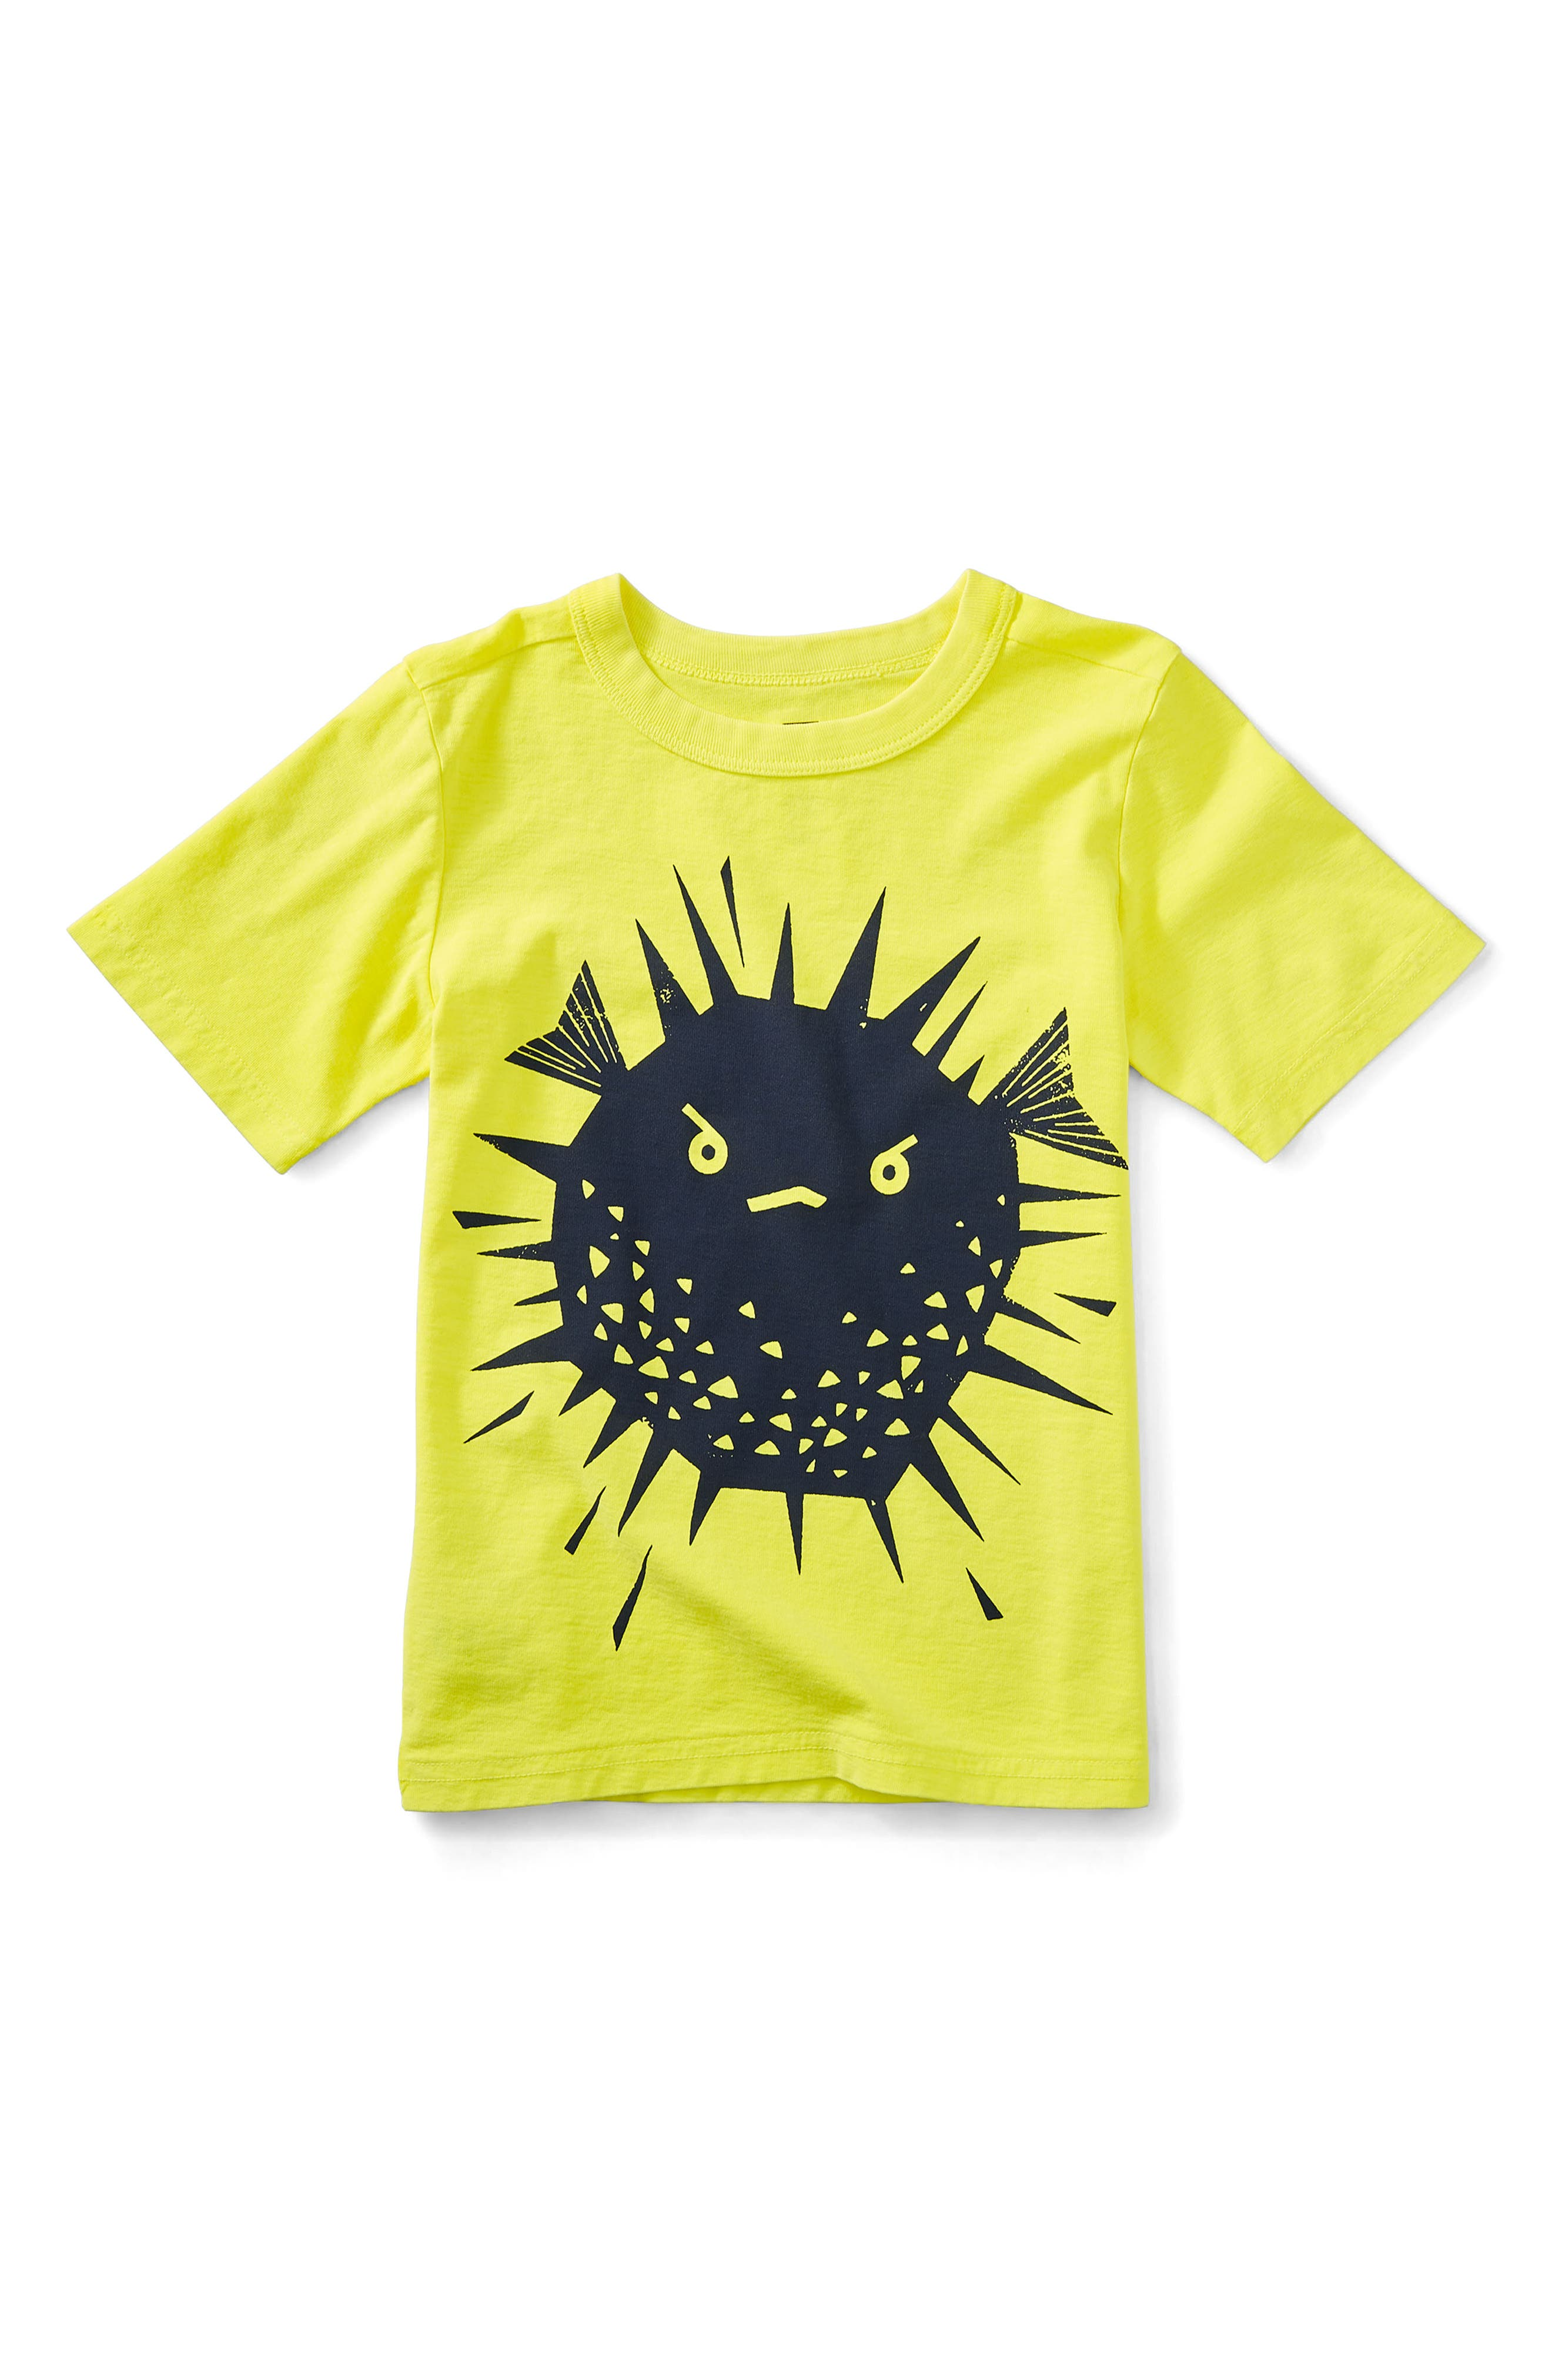 Tea Collection Puffer Fish Graphic T-Shirt (Toddler Boys, Little Boys & Big Boys)